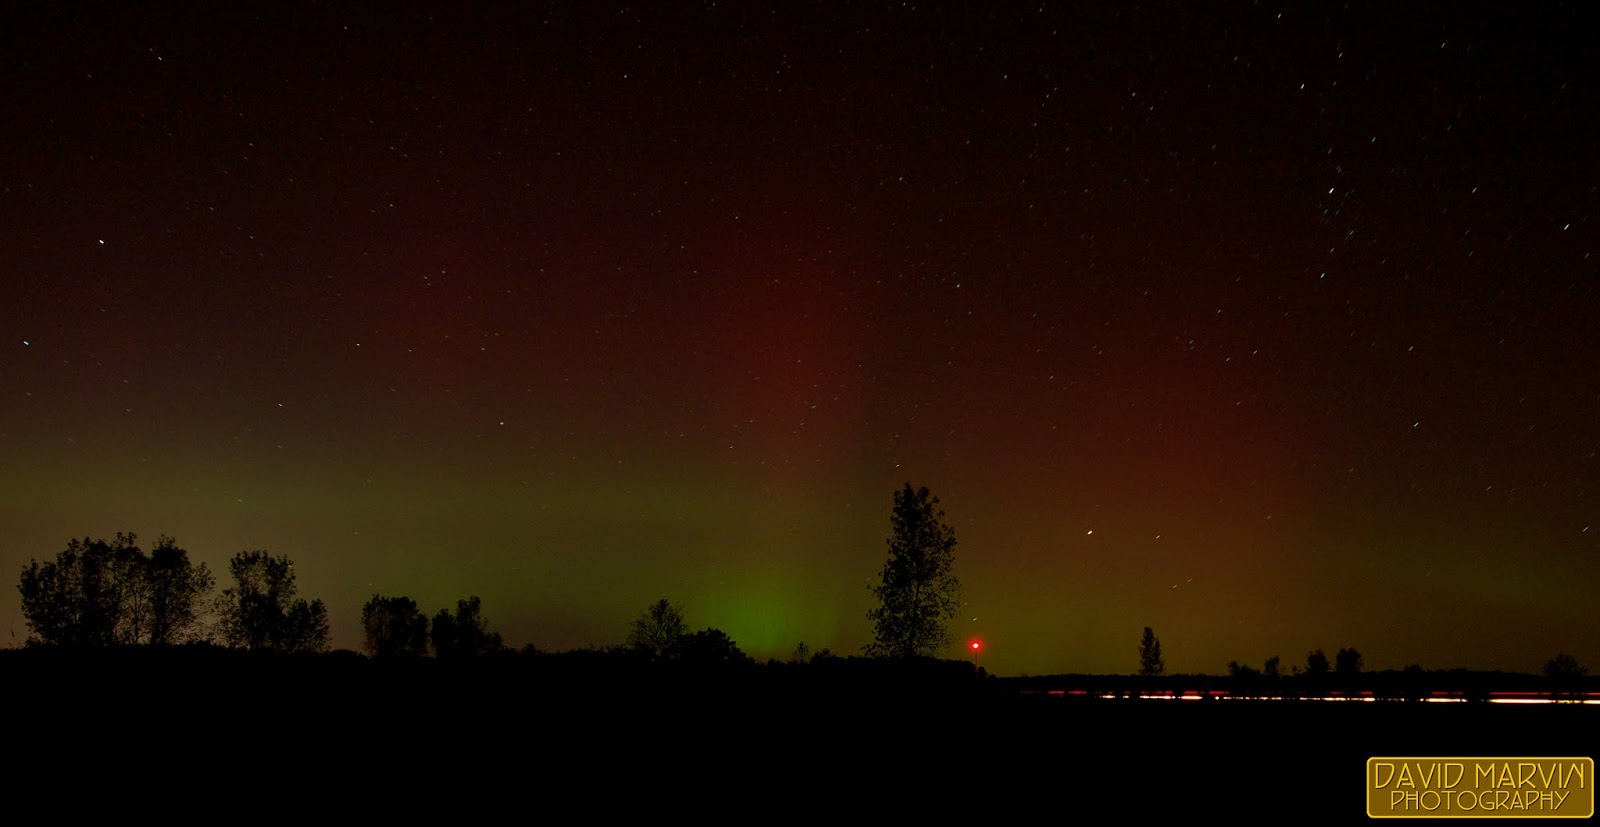 David marvin photography lansing michigan a chance for Chance of seeing northern lights tonight